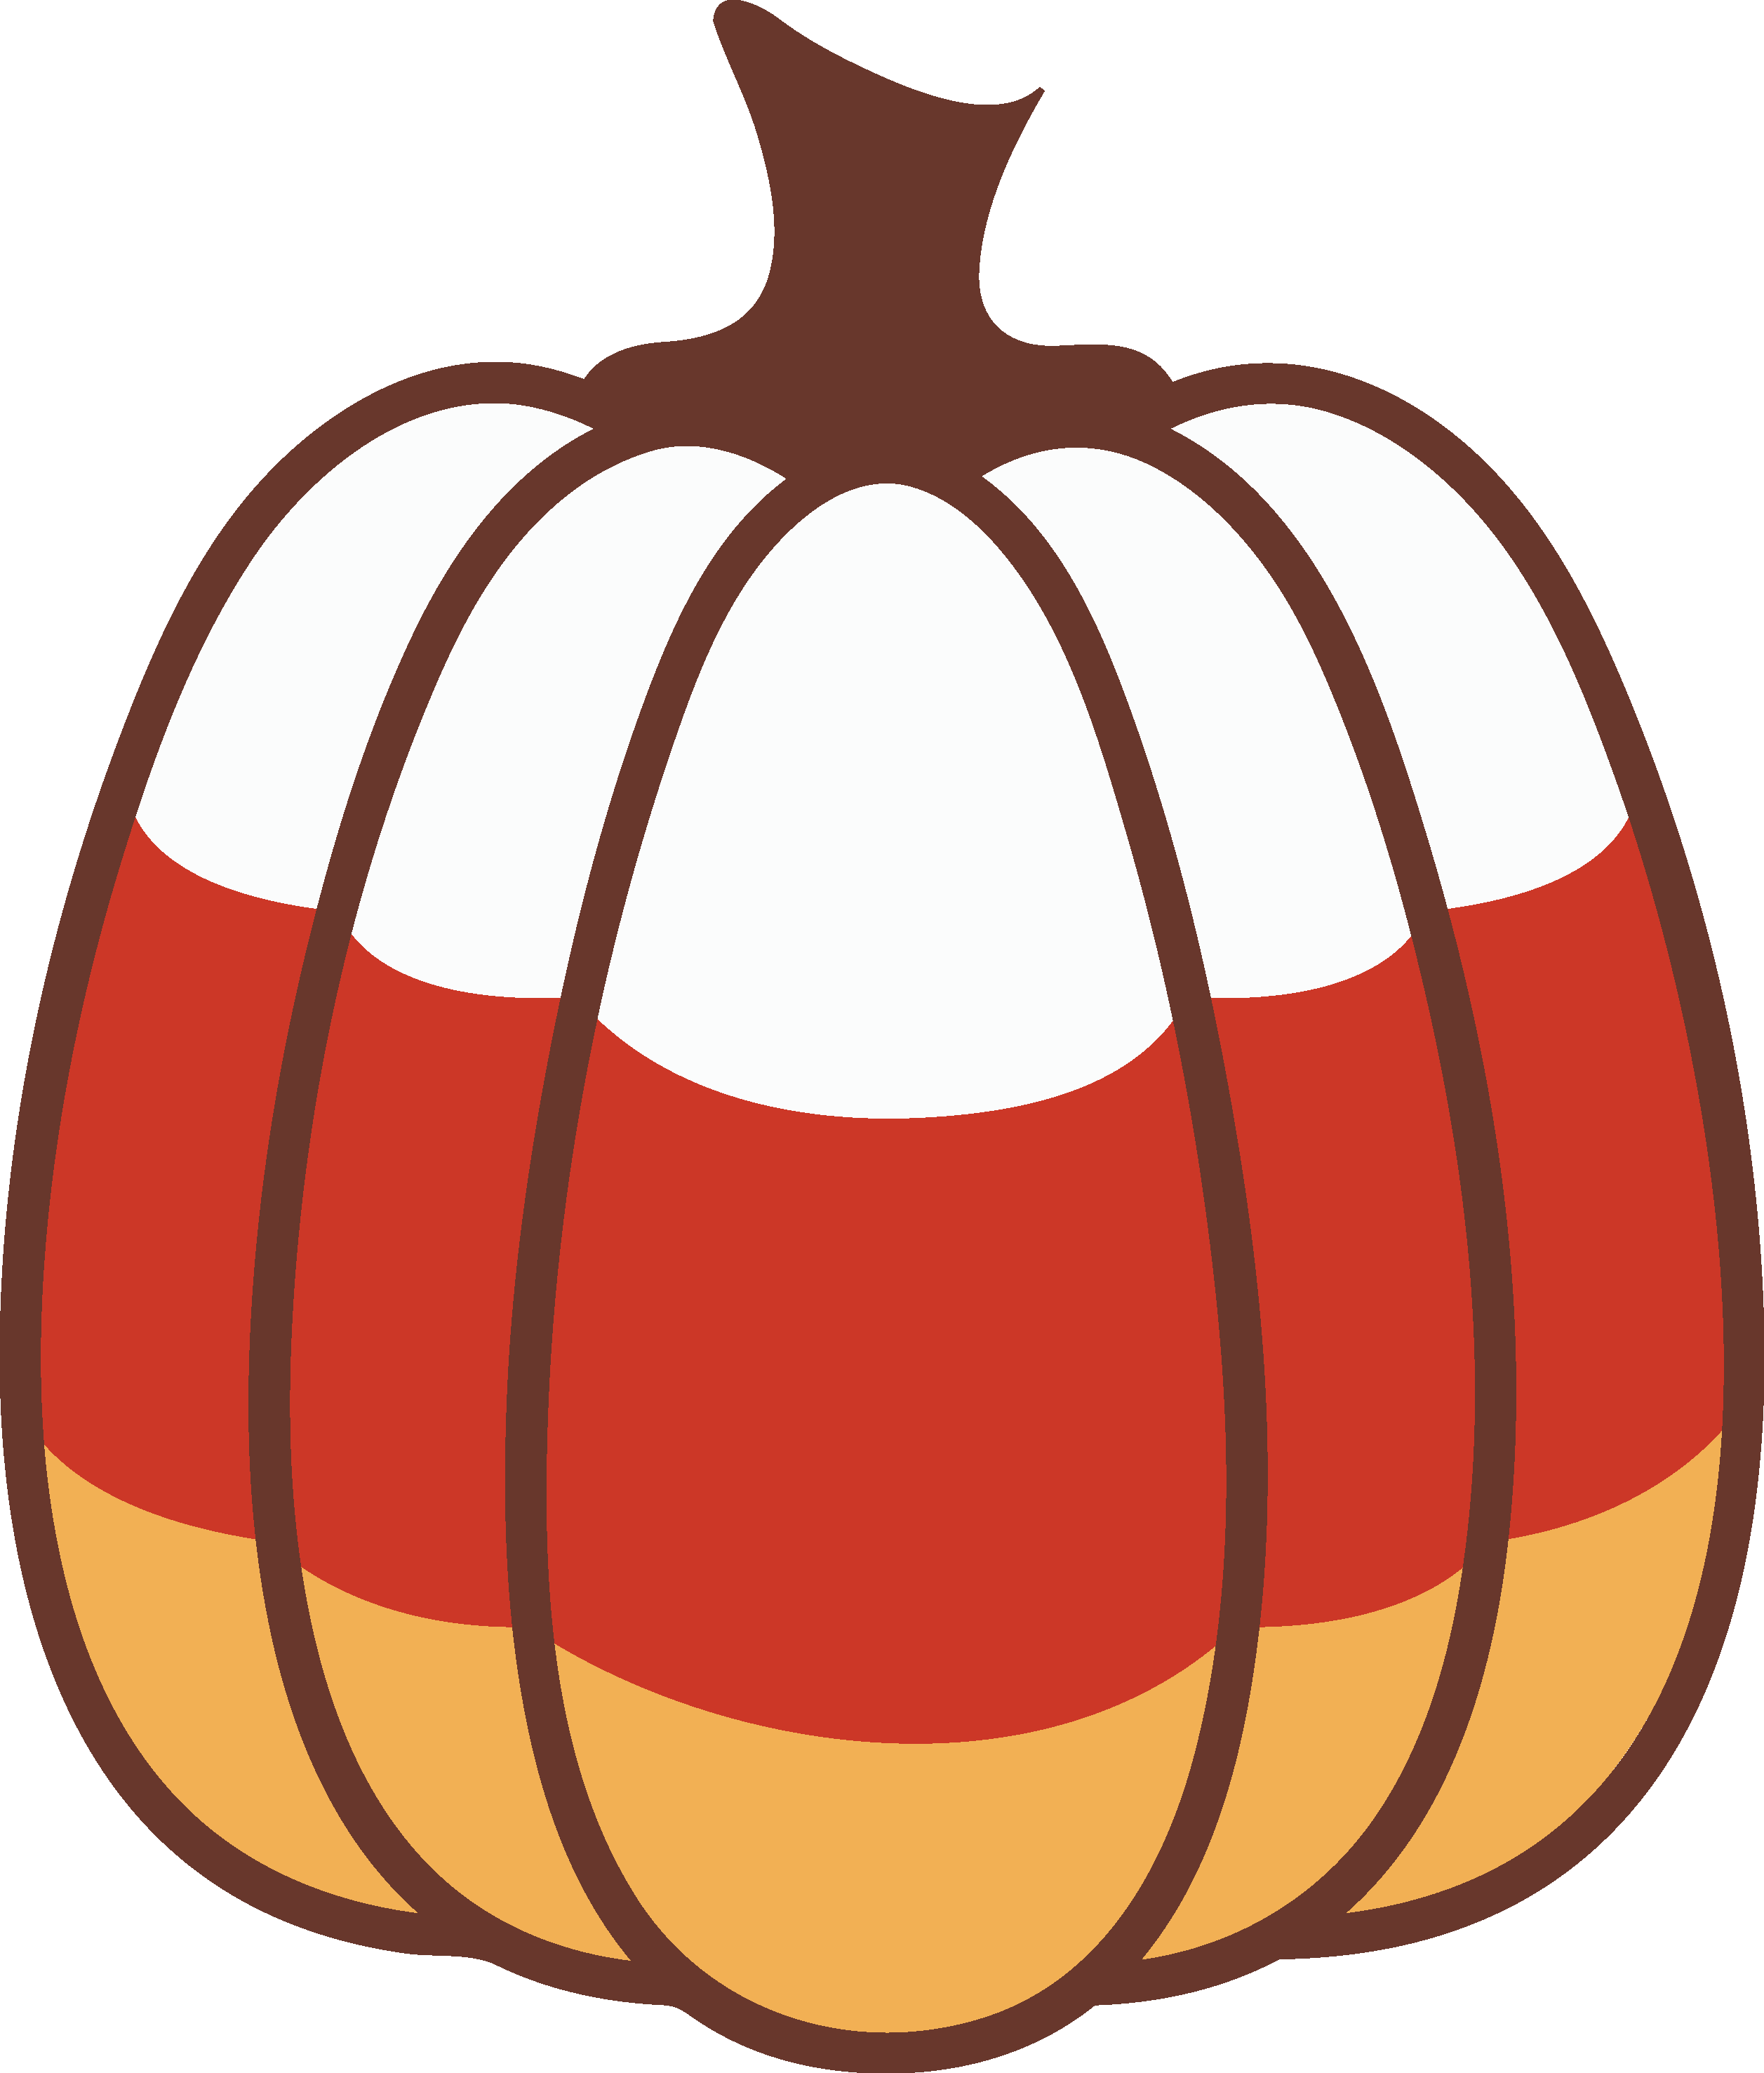 Cardstock and paper crafts. Clipart pumpkin silhouette